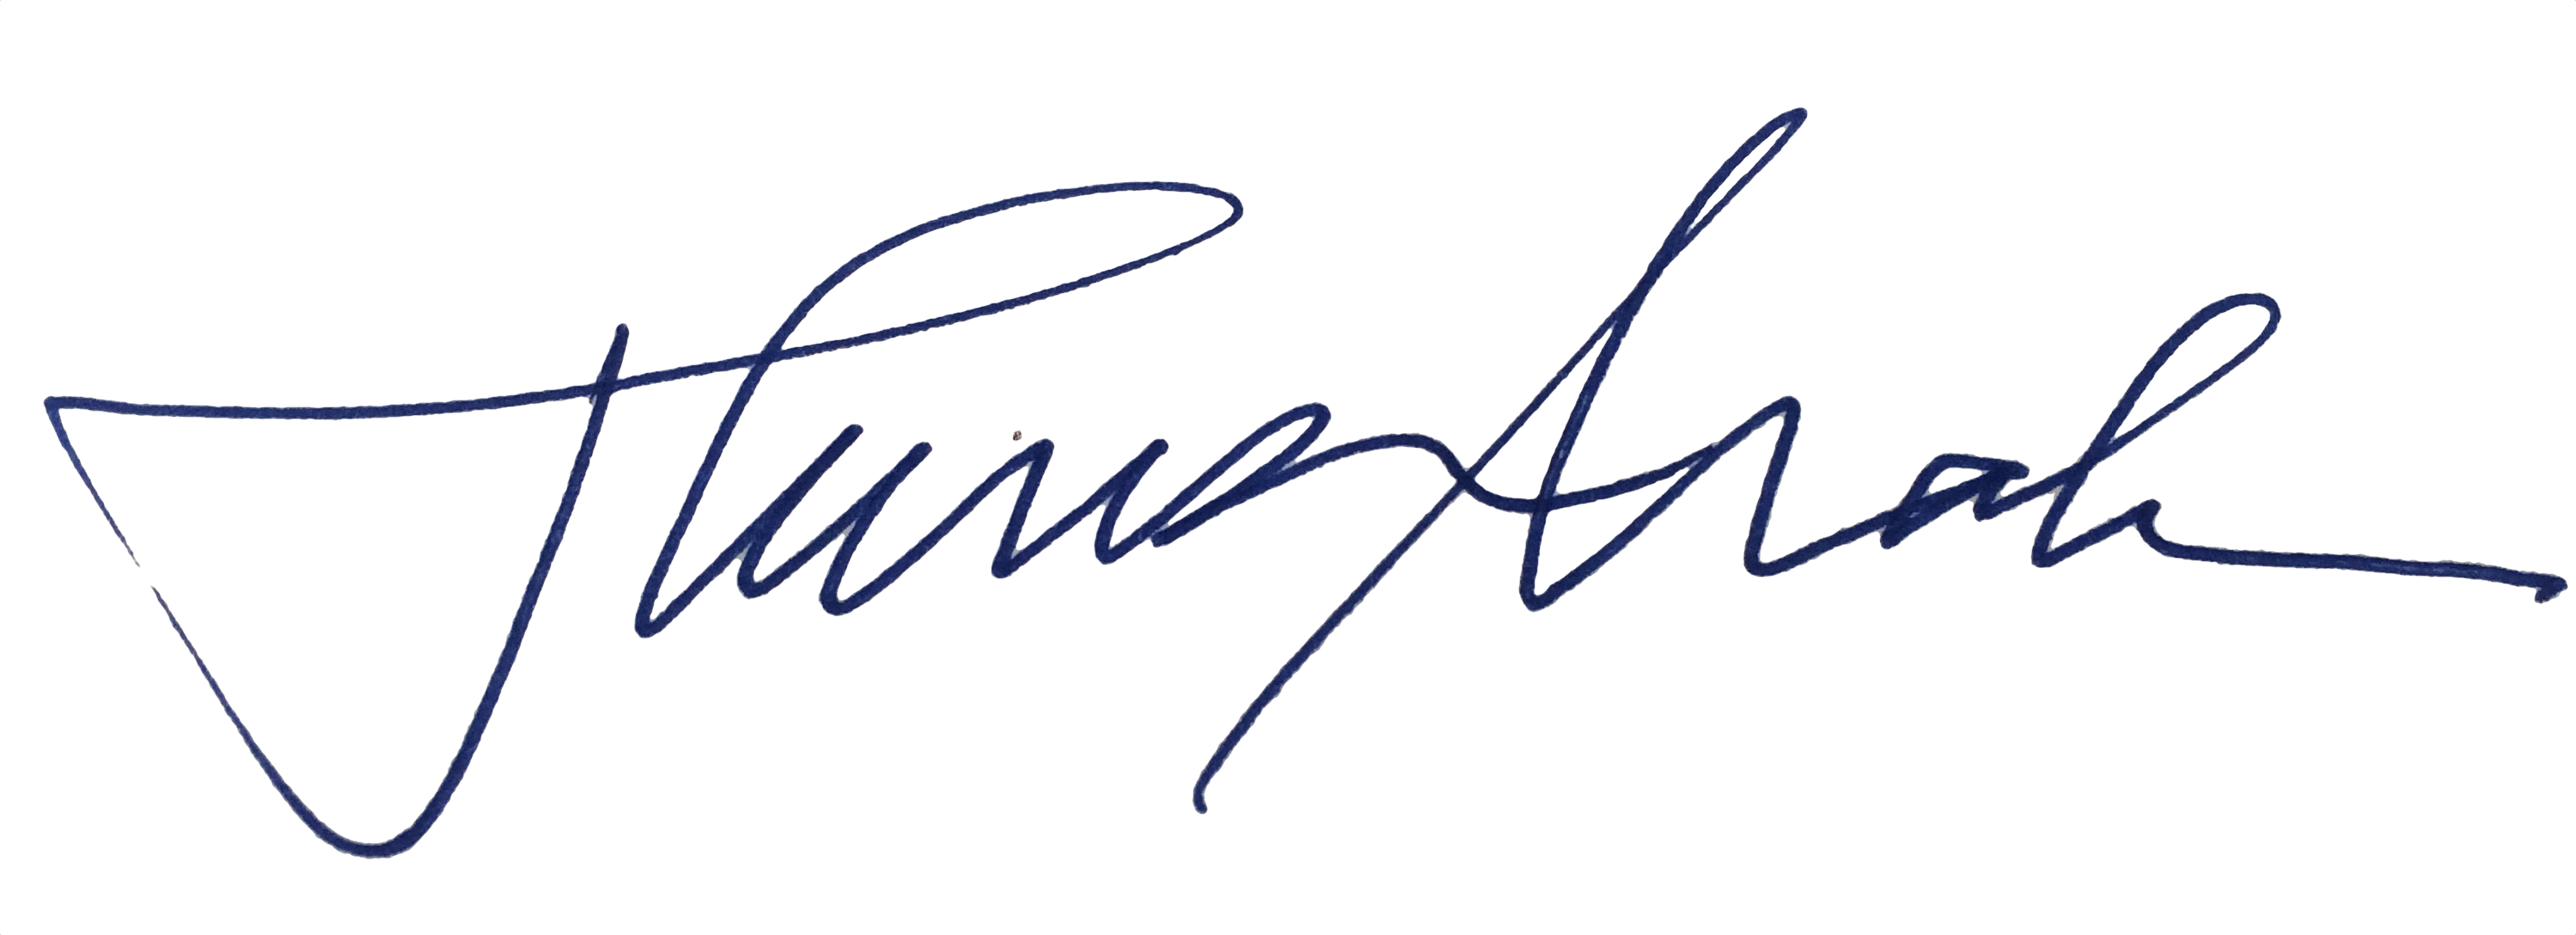 theresa_signature.png